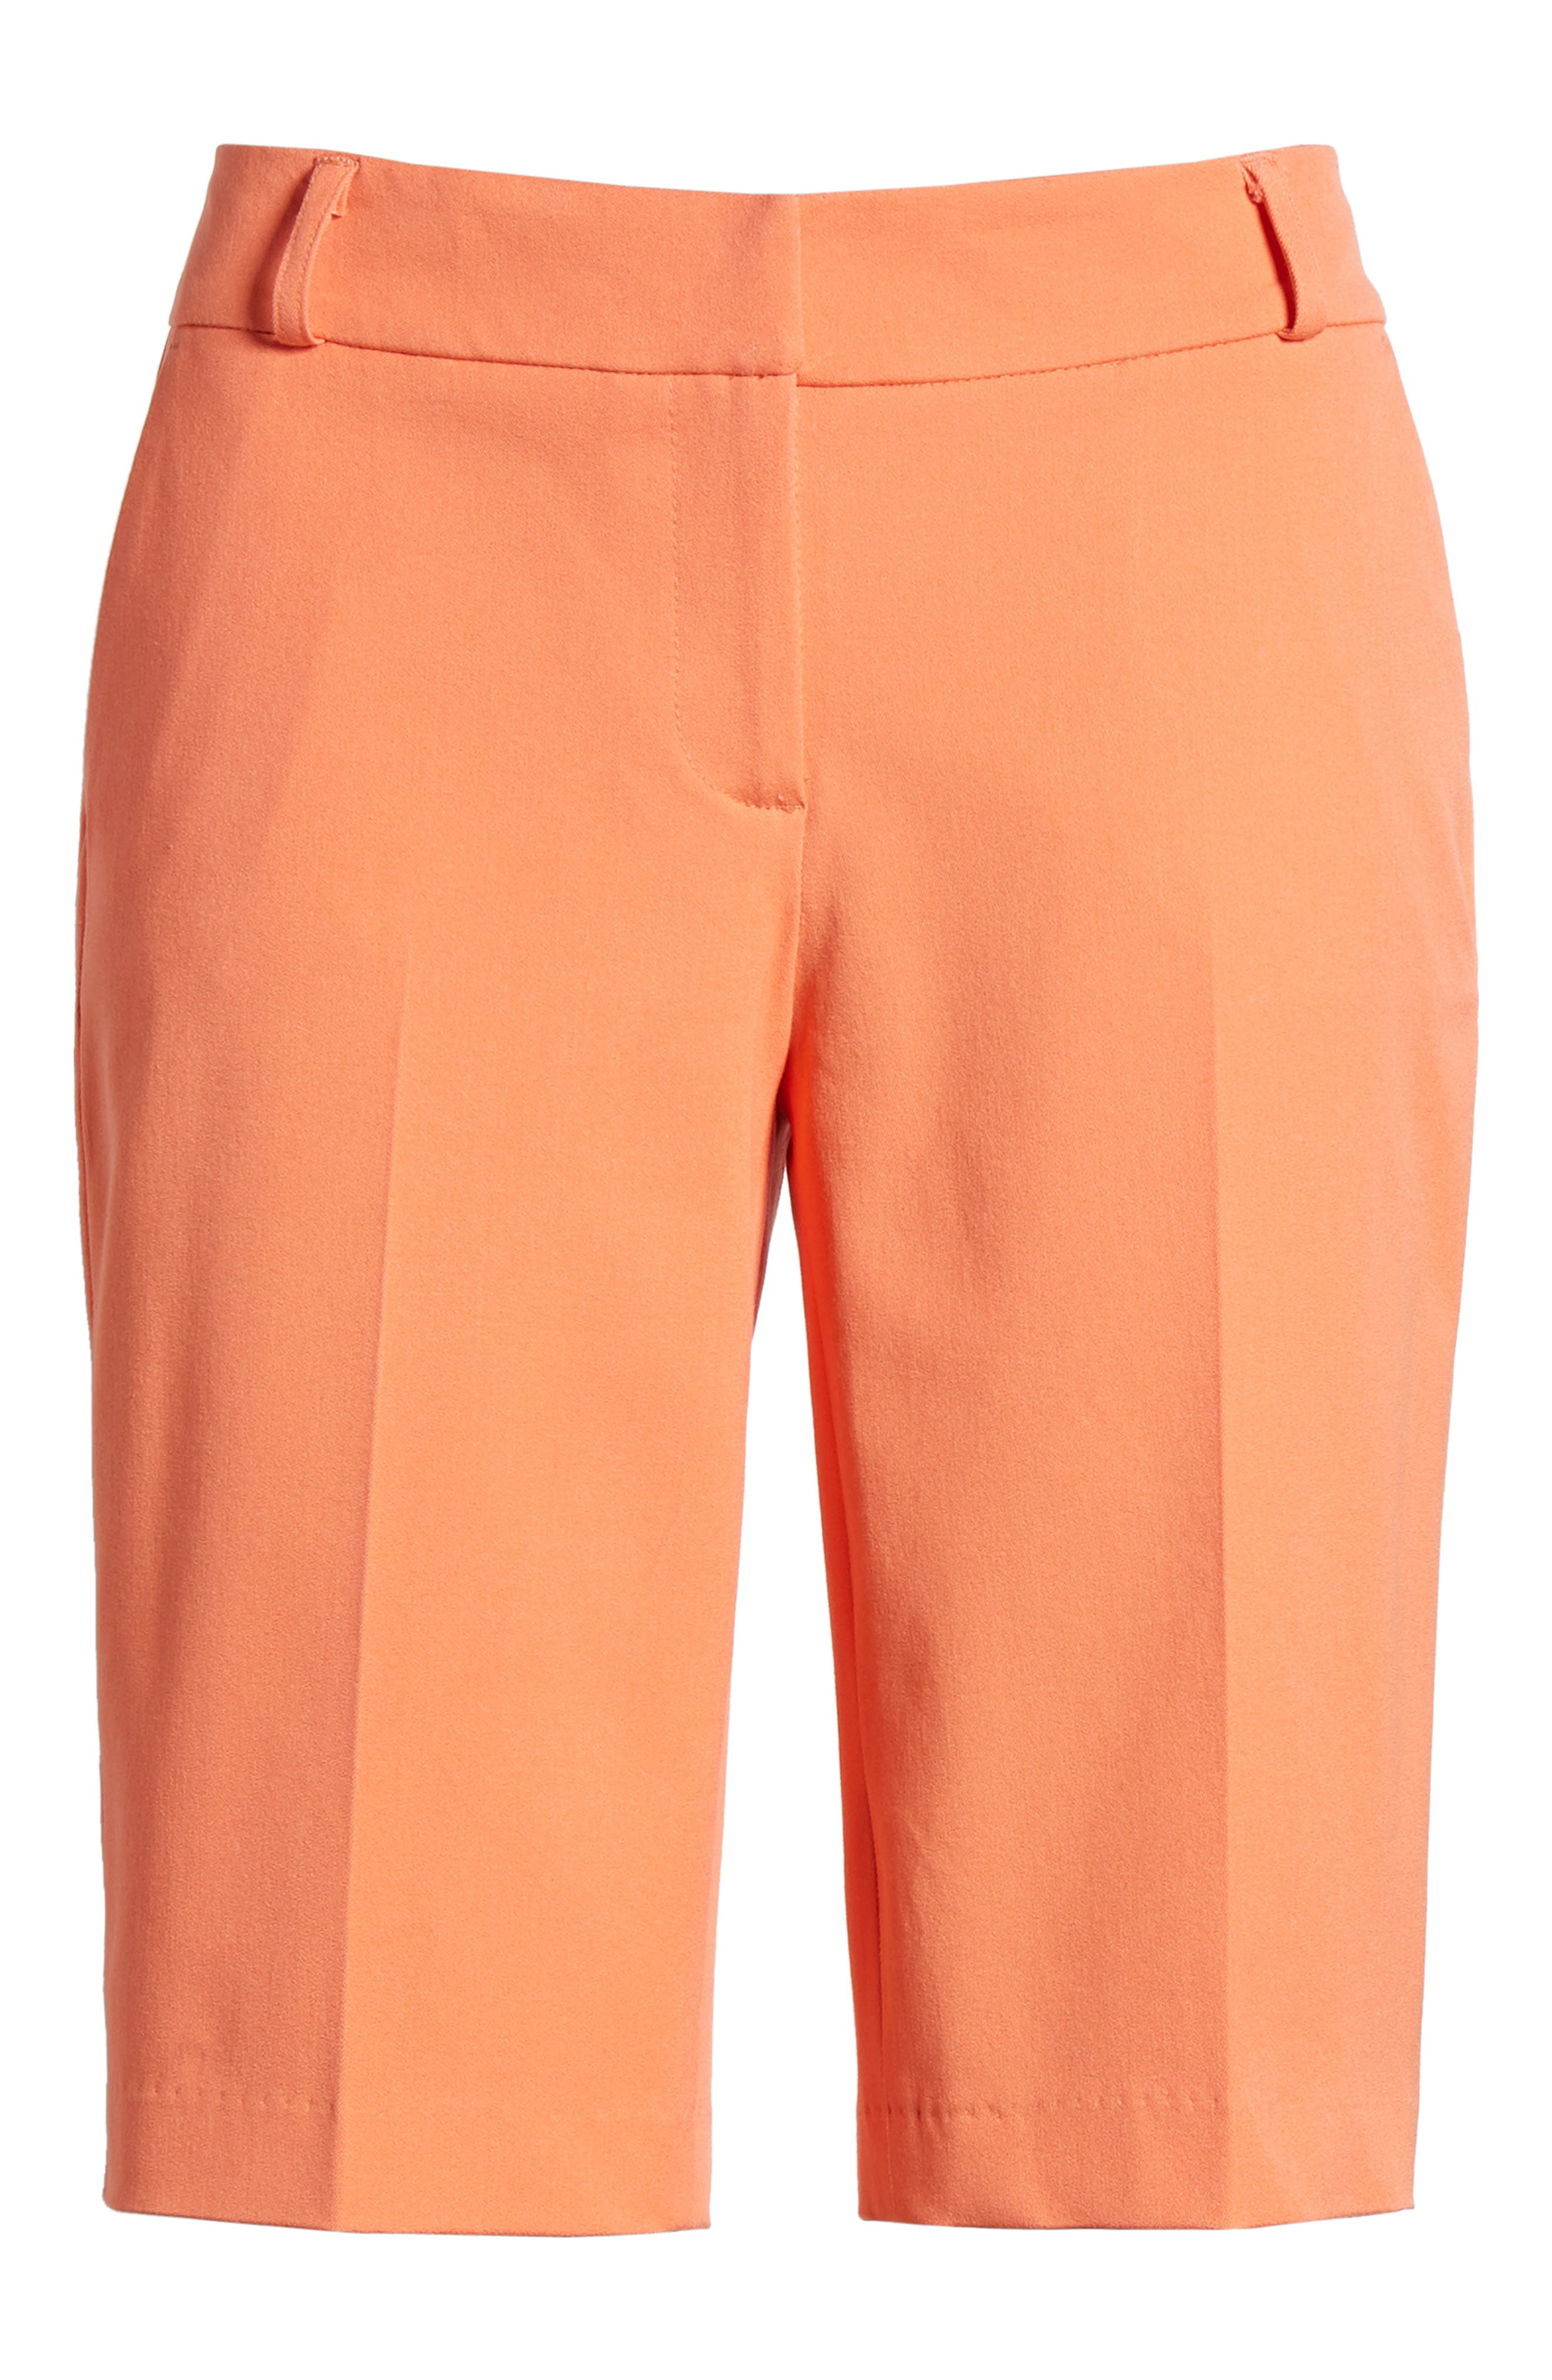 Stretch Bermuda Shorts,                             Alternate thumbnail 6, color,                             Coral Ocean